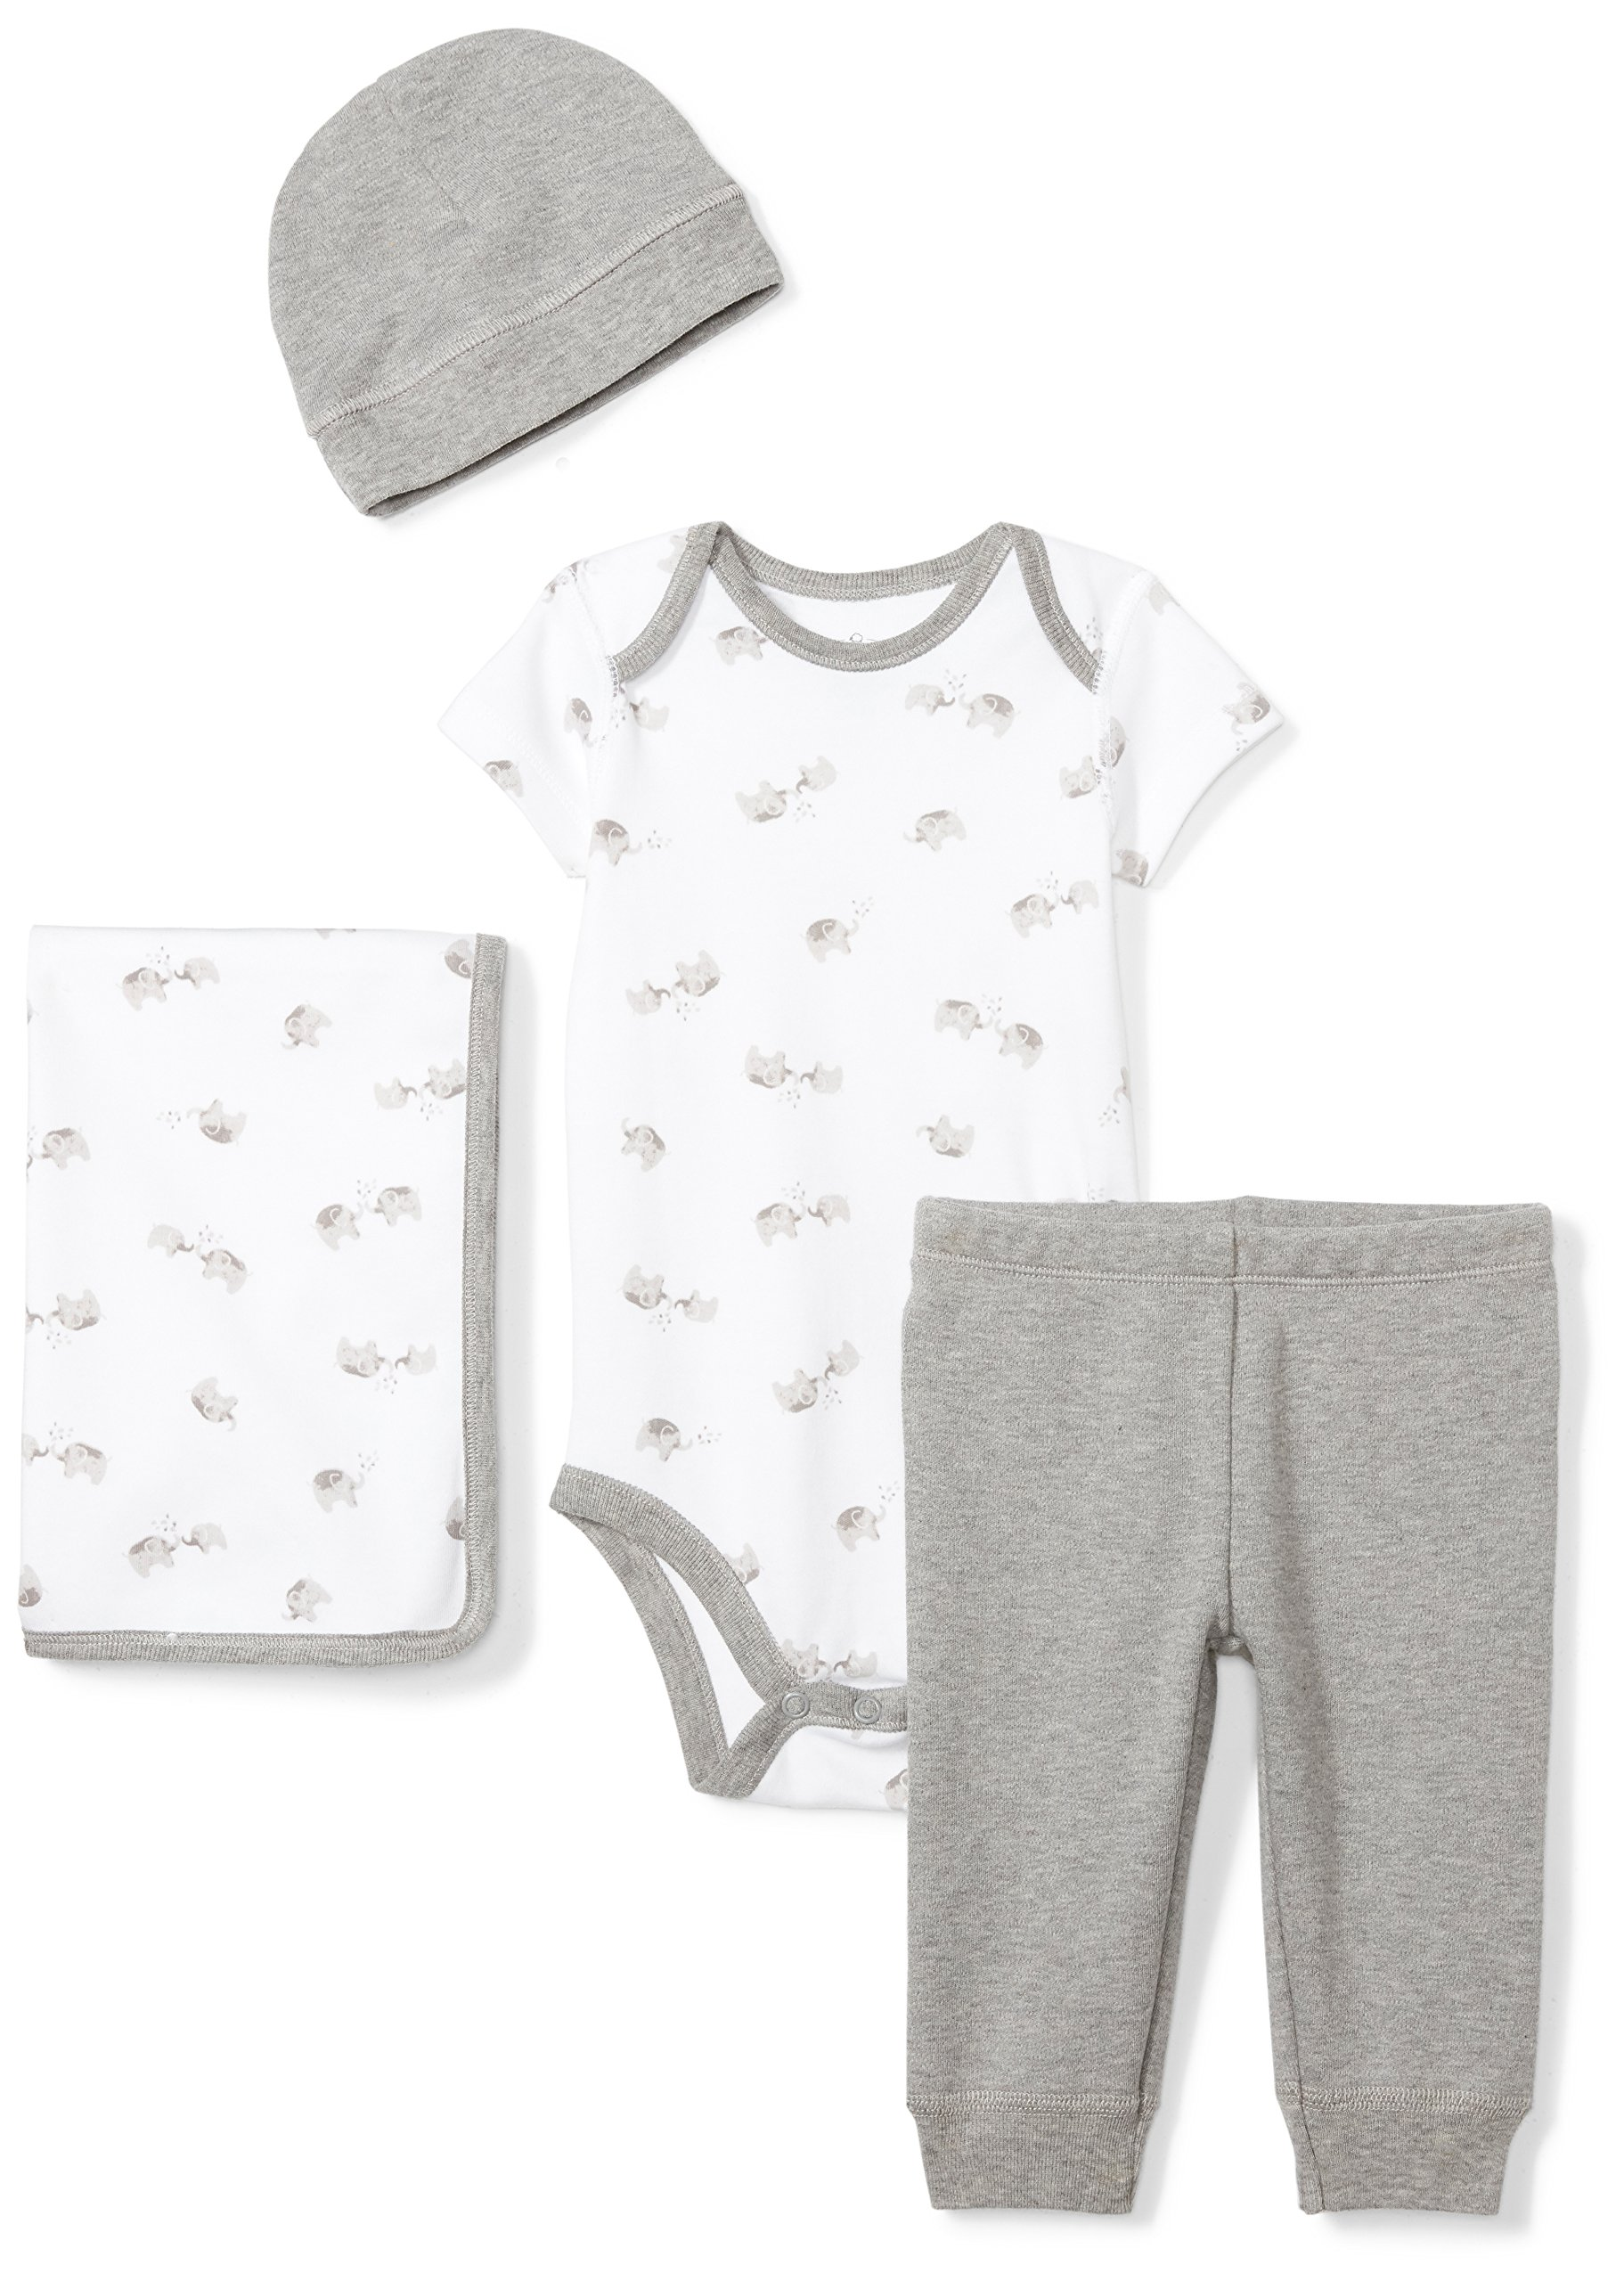 Moon and Back Baby Infant 4-Piece Organic Gift Set, Grey Elephants, 3-6 Months